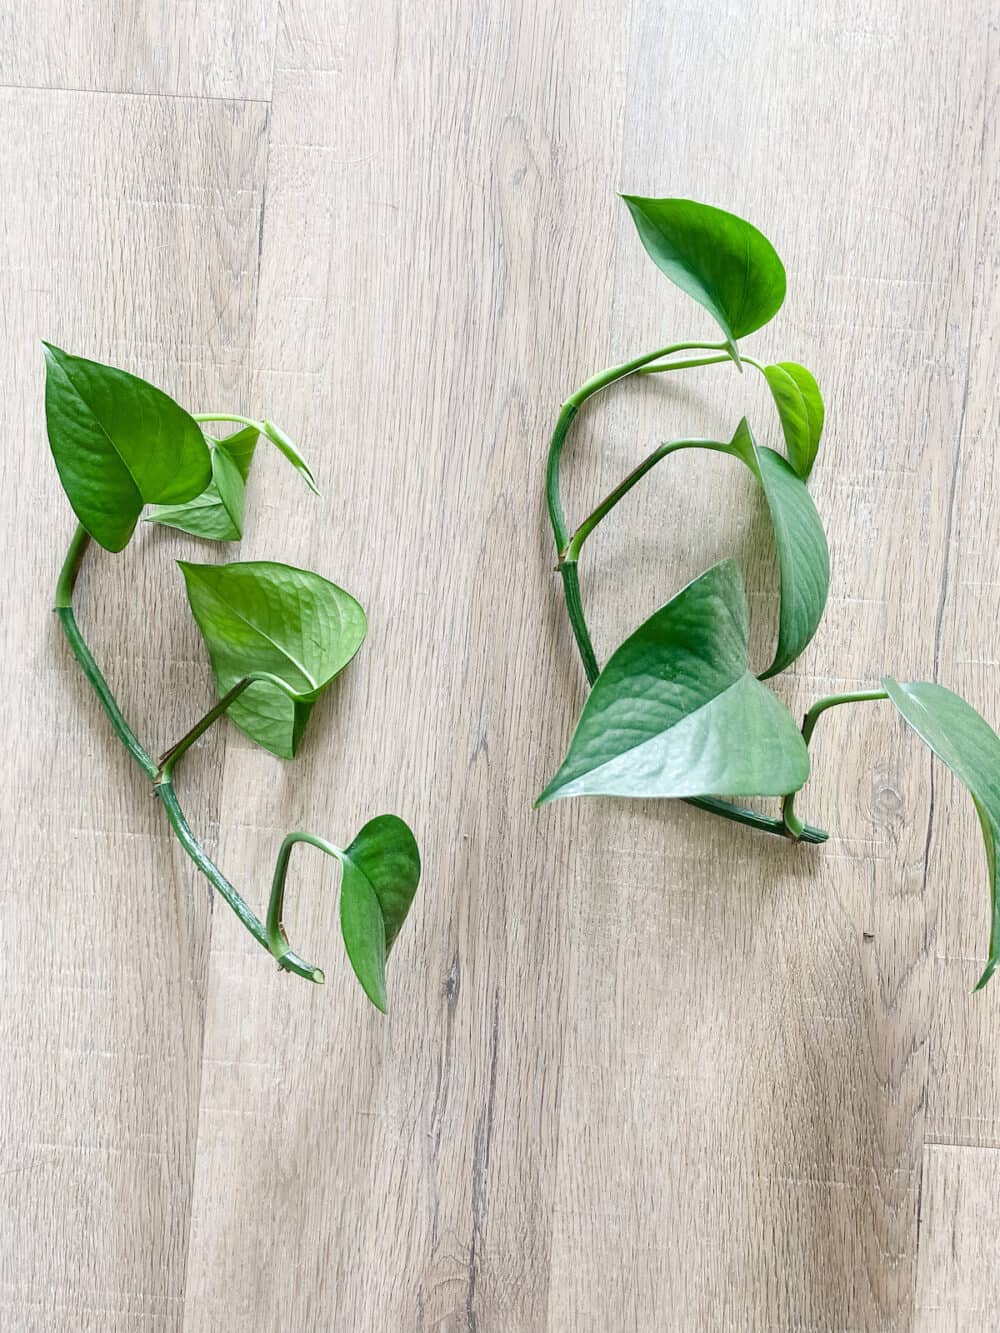 Two pothos plant clippings to be propagated